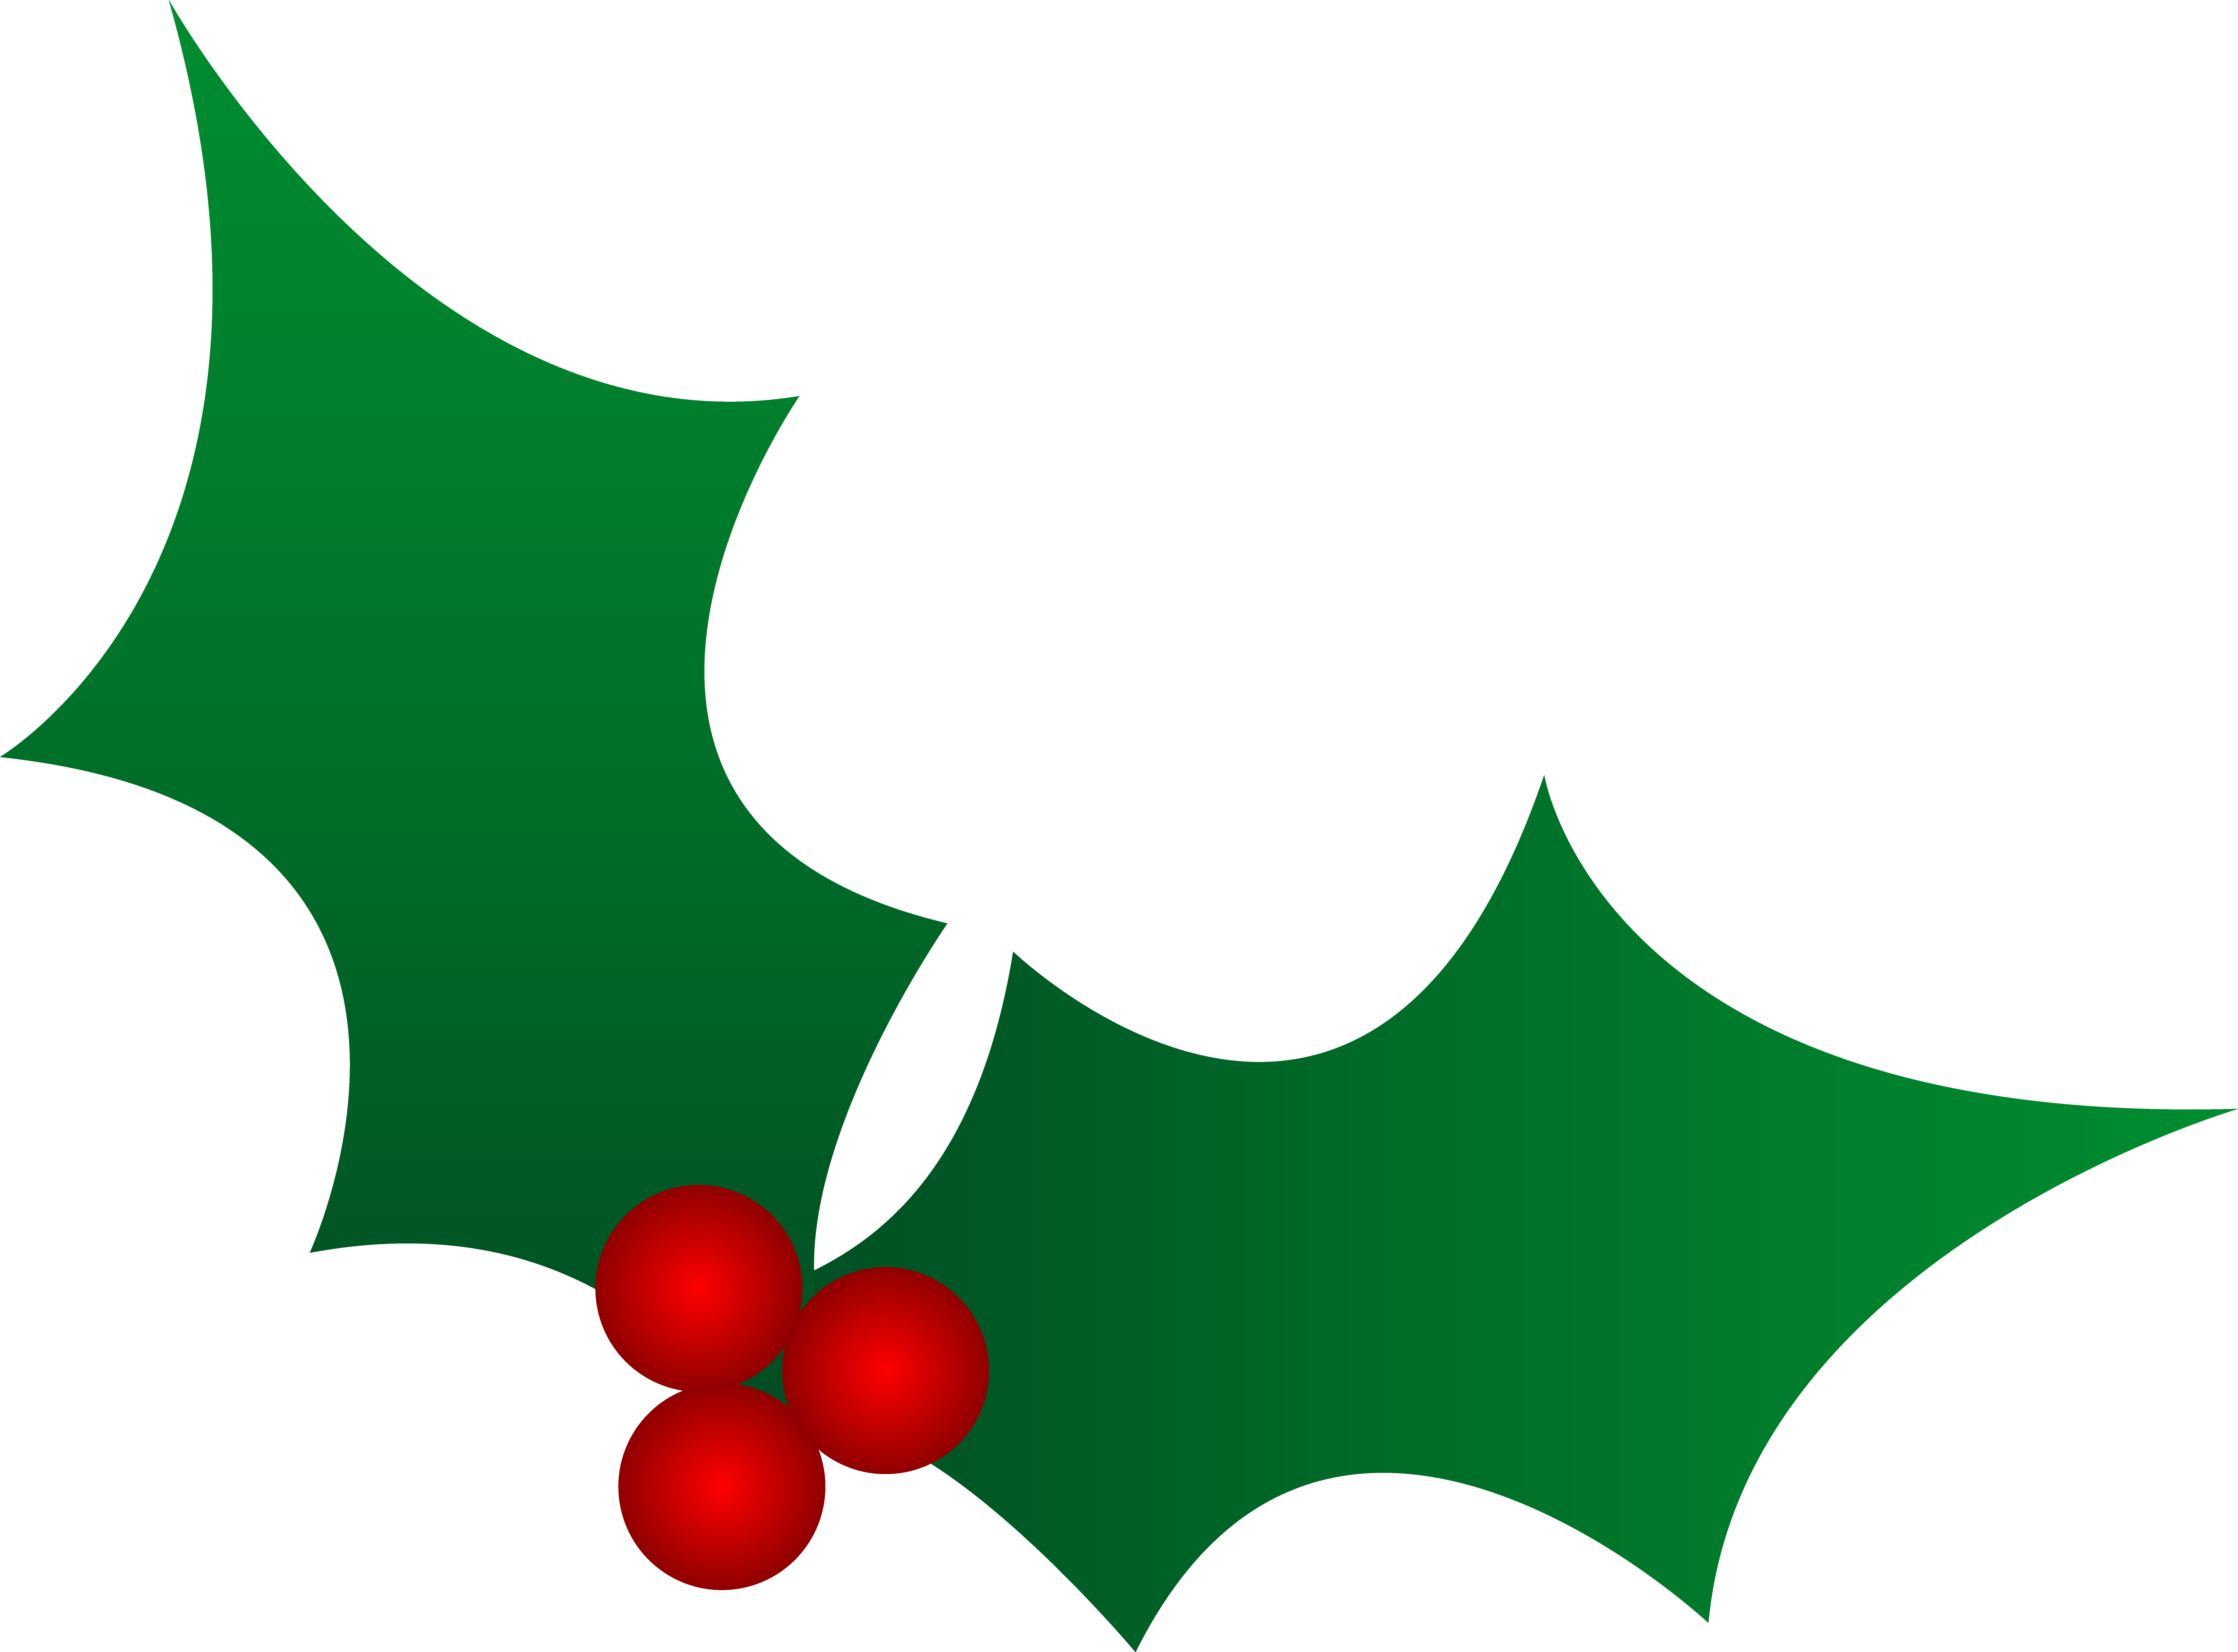 Green christmas clip art. Ivy clipart holly and ivy